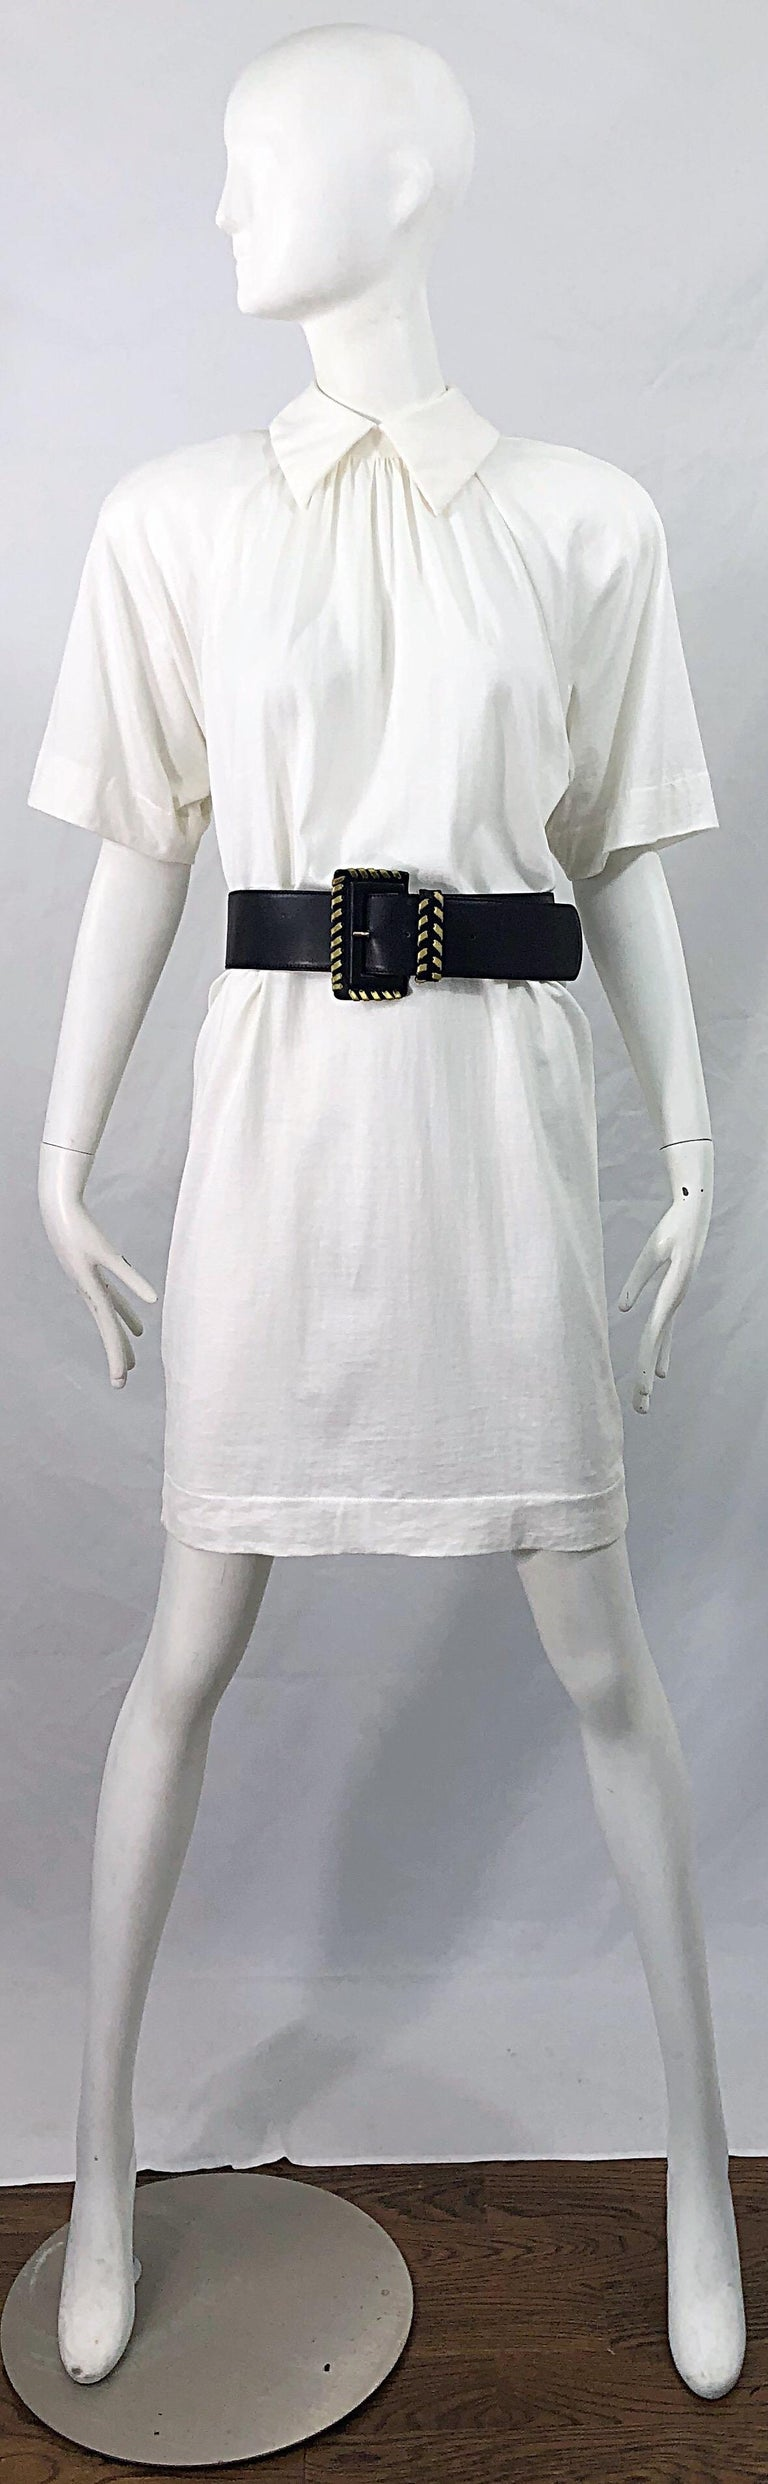 1990s James Purcell Size 6 / 8 White Cotton Vintage 90s T-Shirt Dress For Sale 7